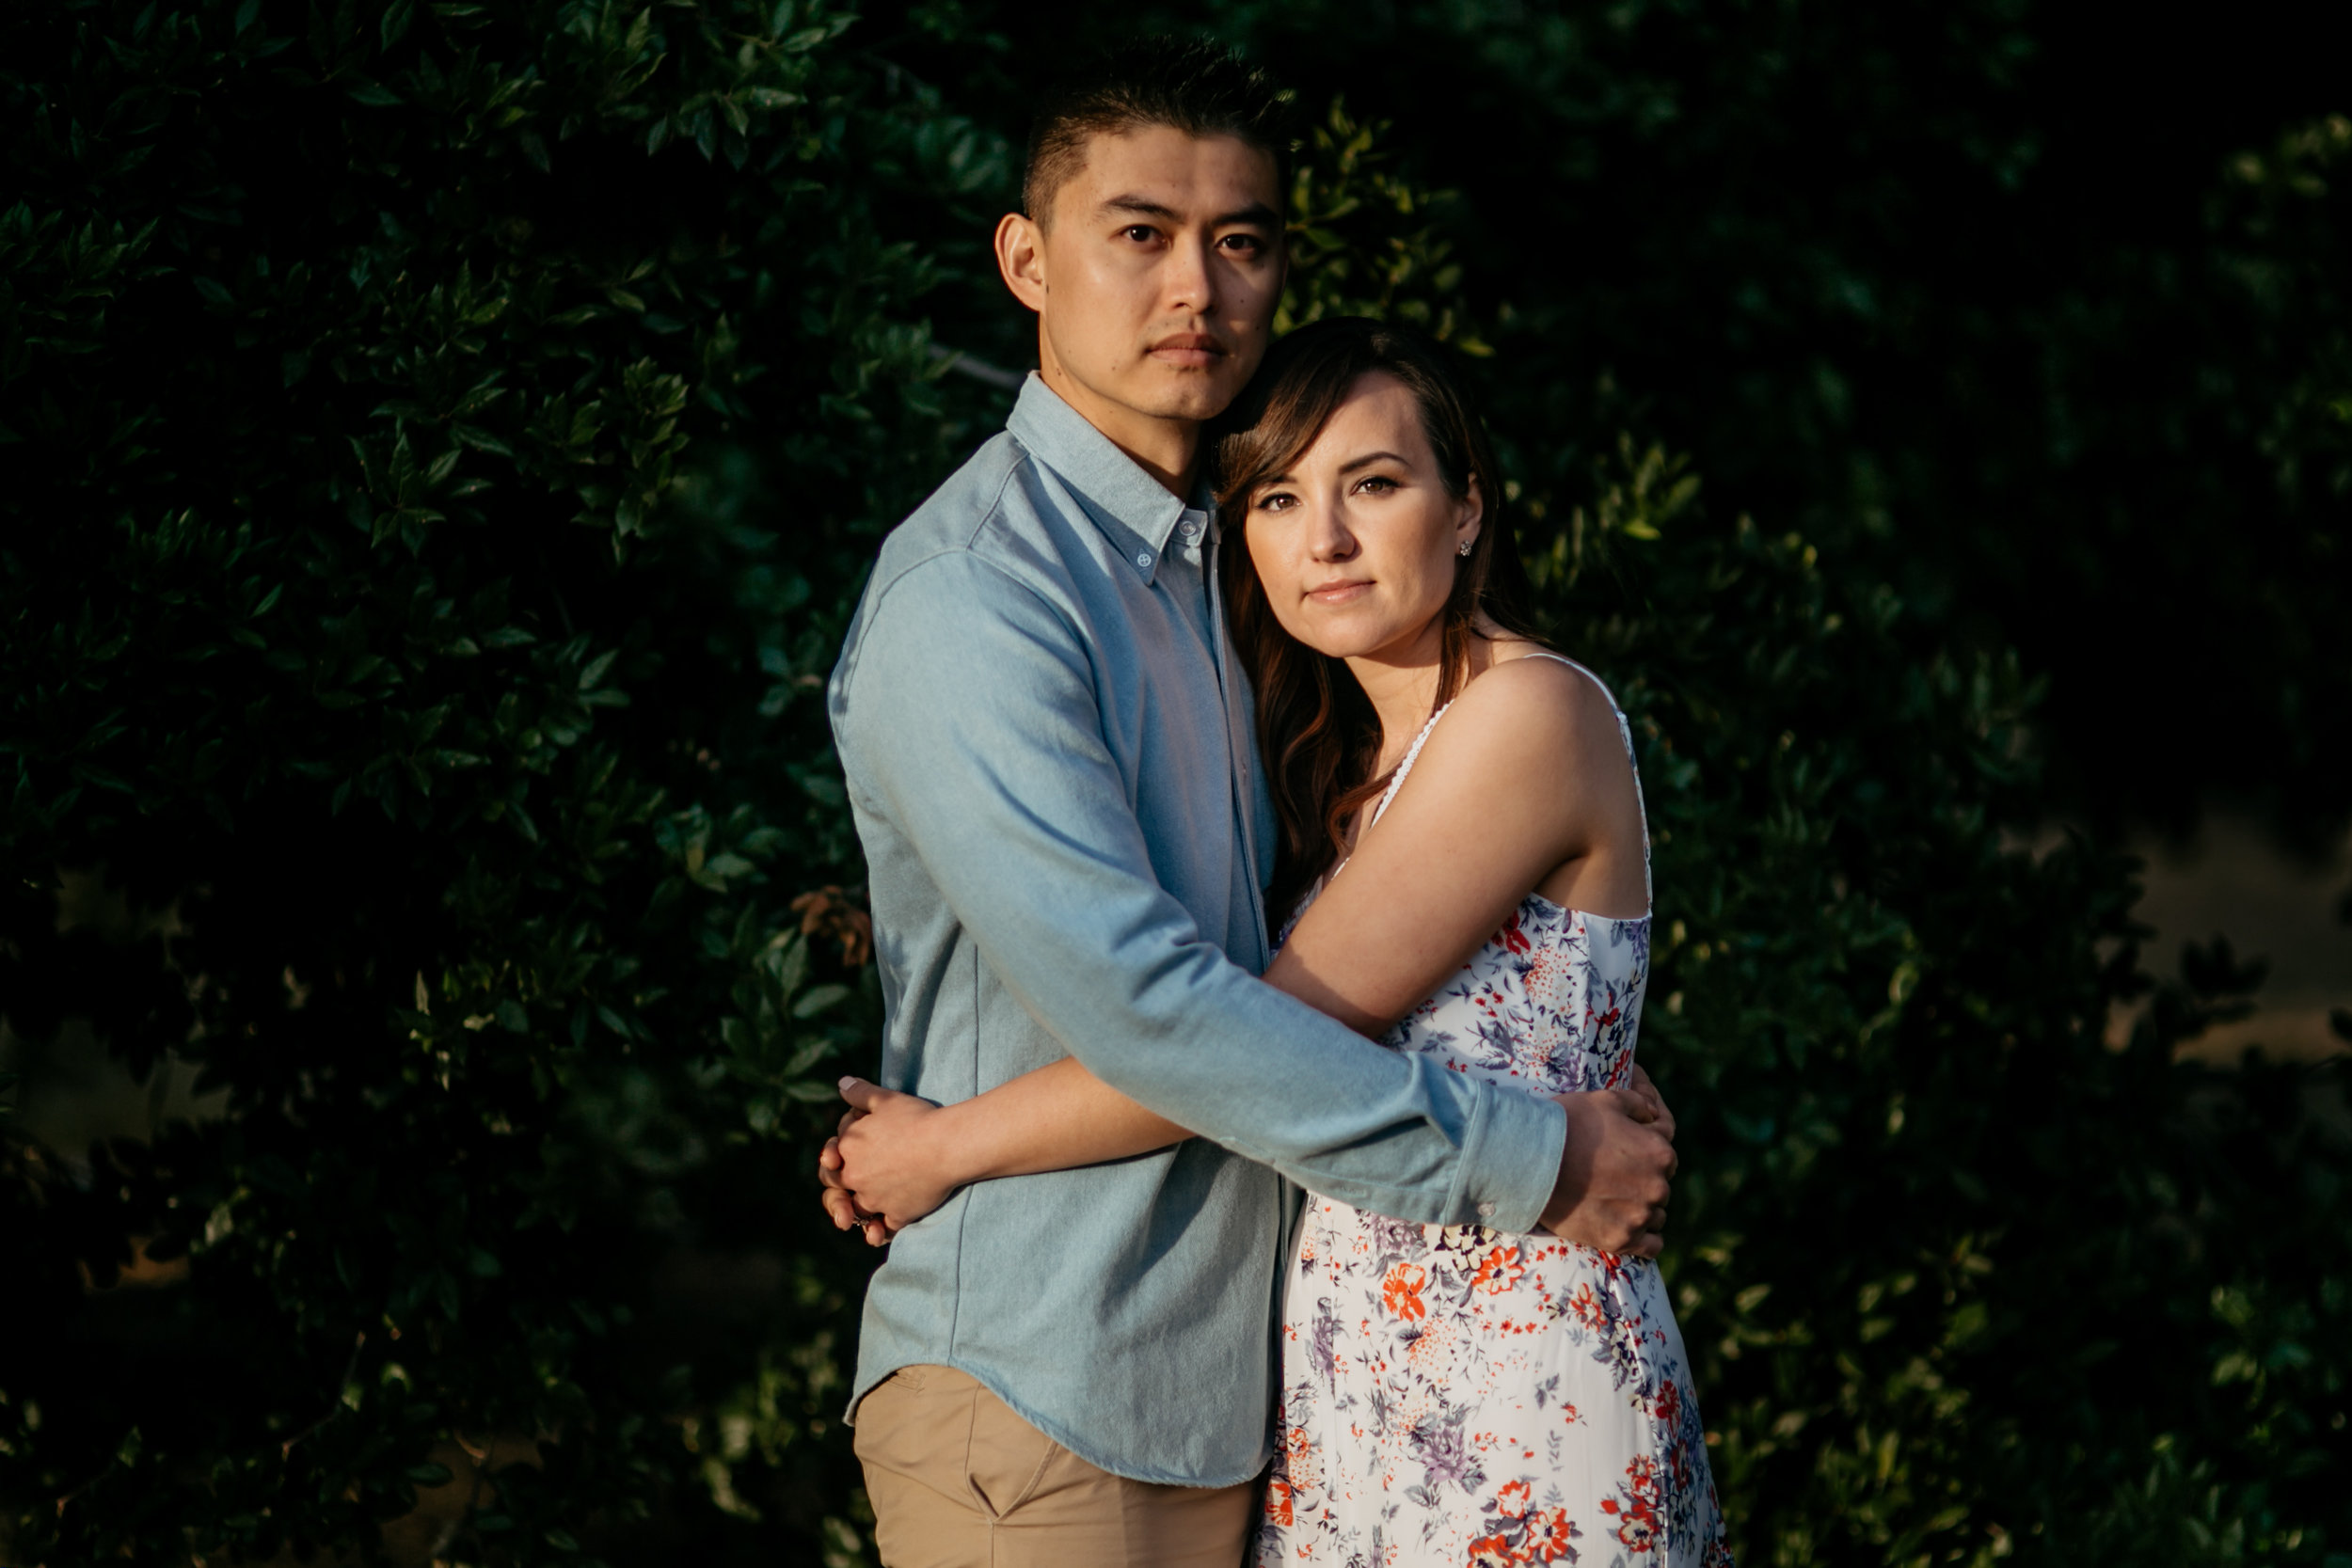 Alison&Andrew-EngagementSession-PhotographybyTheGatheringSeasonxweareleoandkat-32.jpg